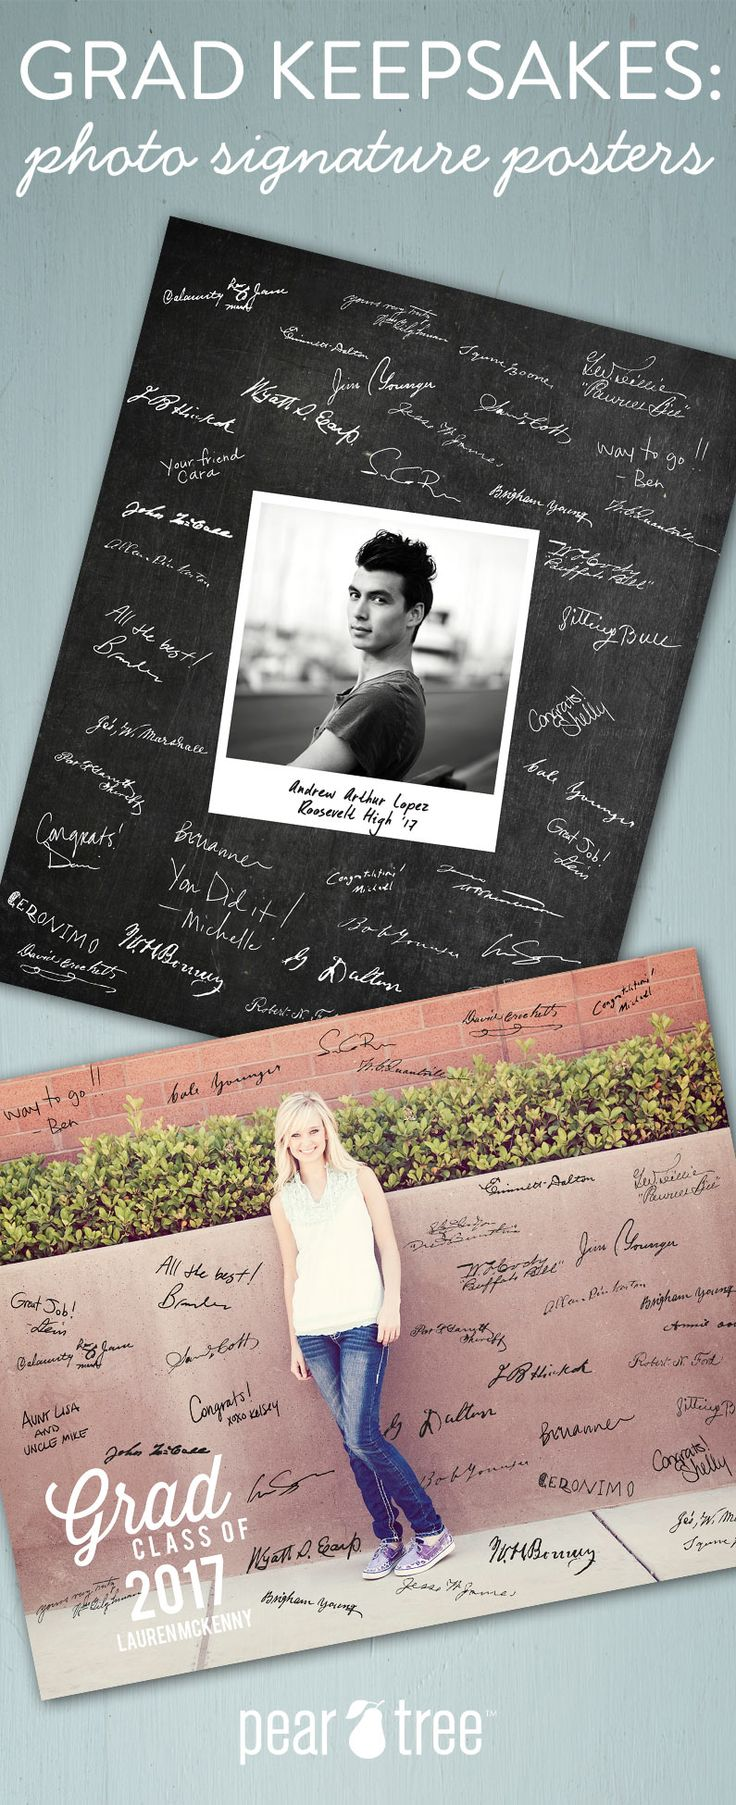 The graduate deserves a special keepsake; something they'll be proud to display long after graduation. Photo Signature Posters are fun for any grad to put out at their graduation party and display long after the celebration.